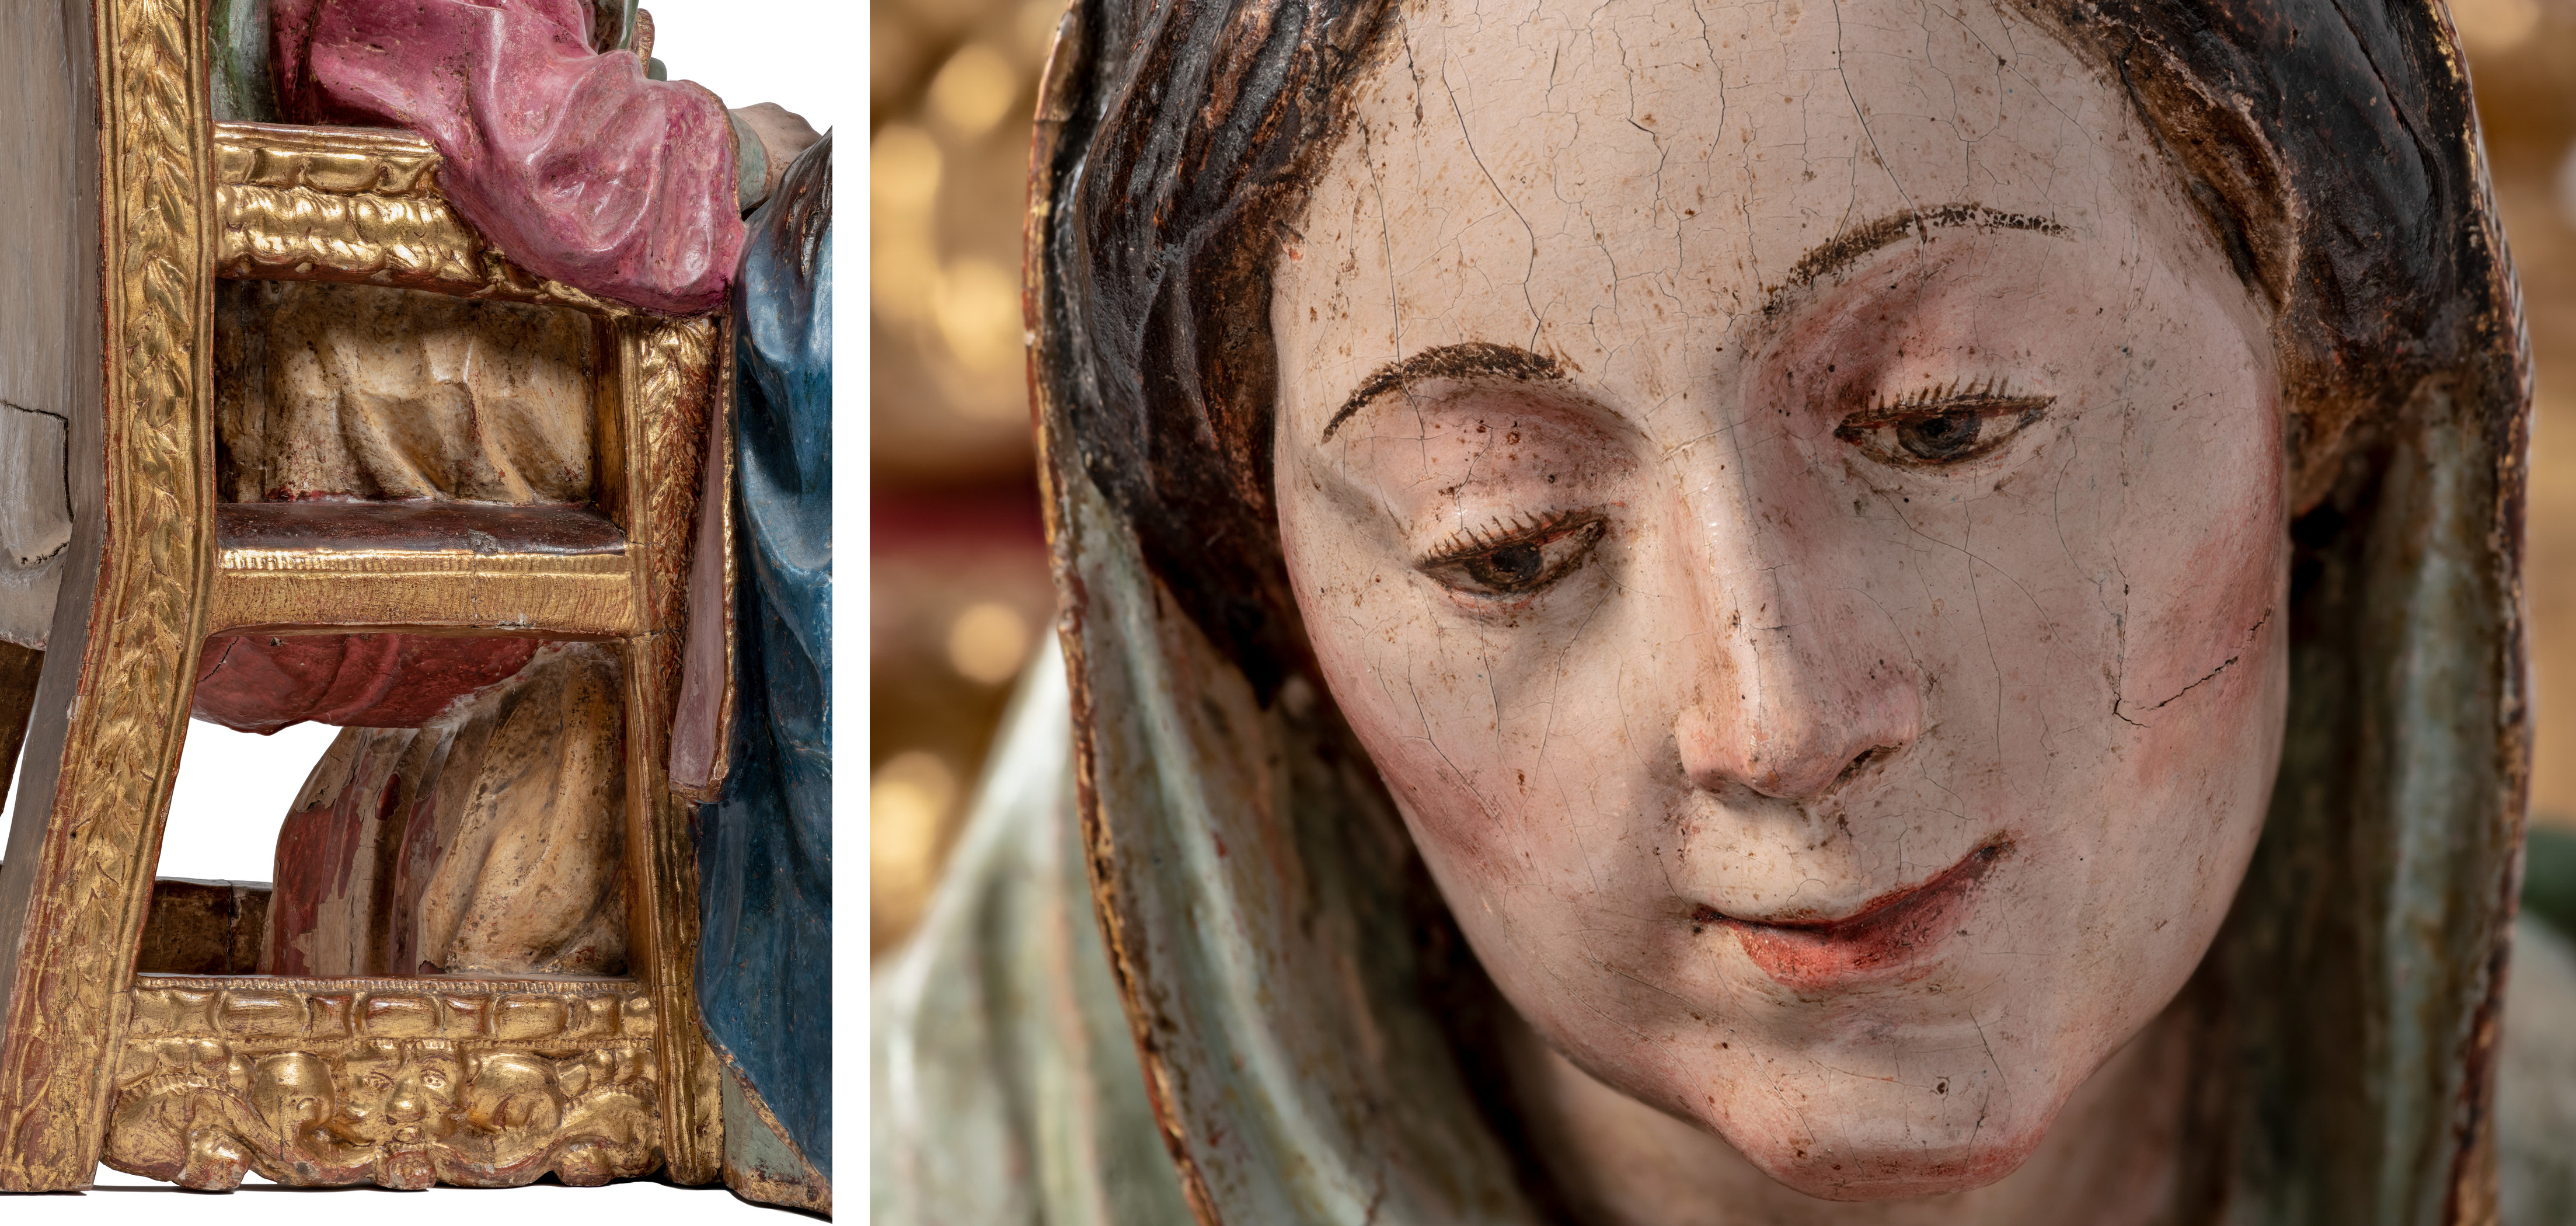 Luisa Roldán, called La Roldana, The Education of the Virgin (details), early 1680s, gift of the 2019 Collectors Committee with additional funds from Linda Borick and Bill Davidson on behalf of the Louis L. Borick Foundation, photo © Museum Associates/LACMA